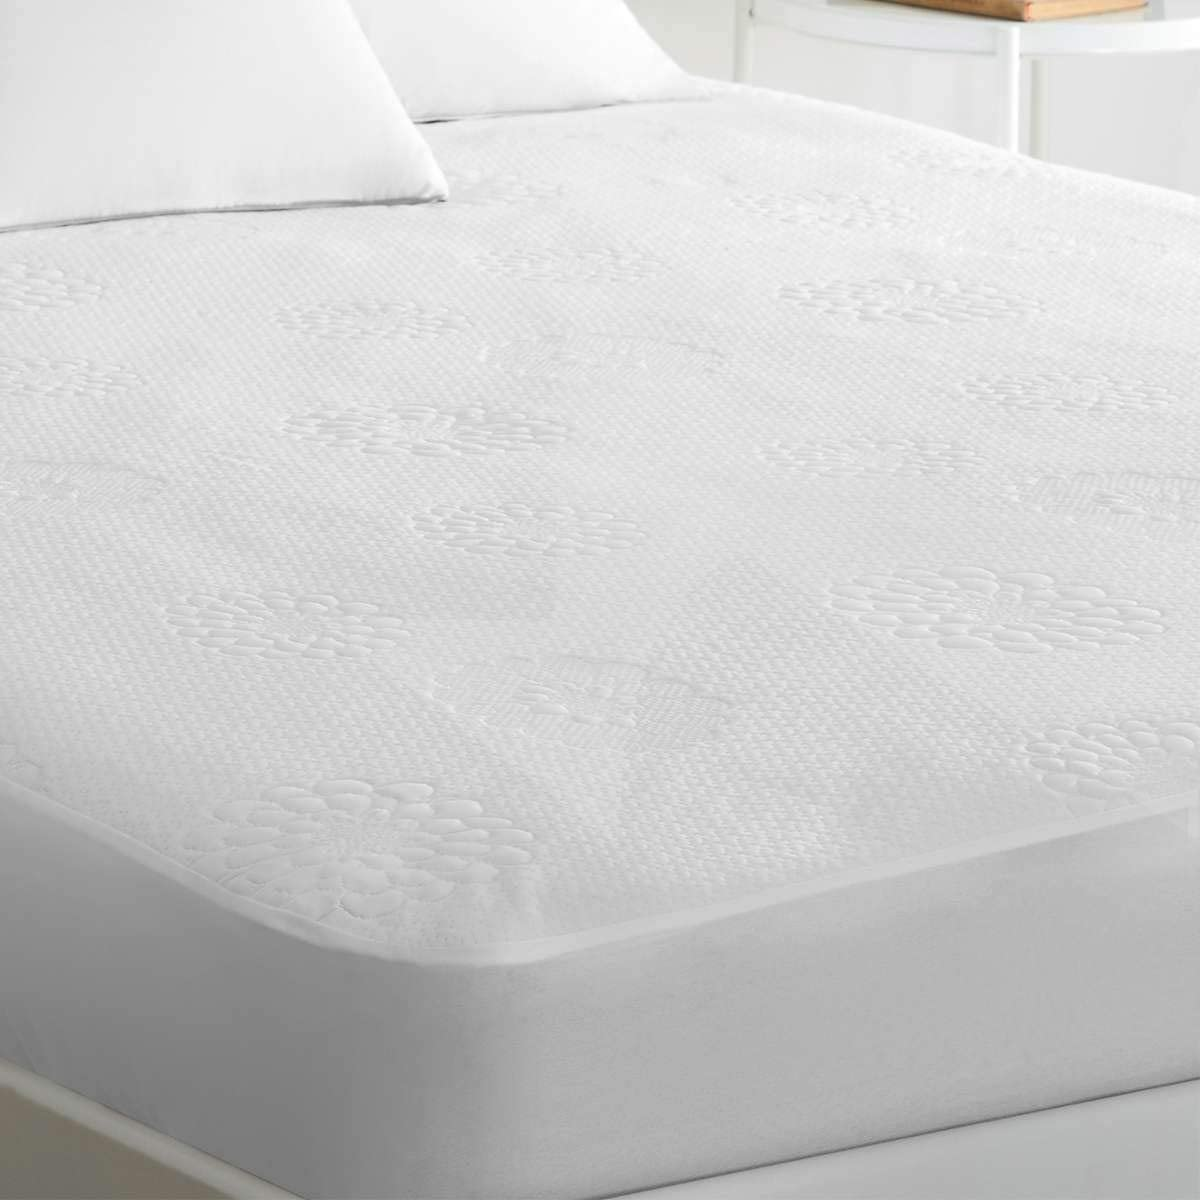 Waterproof Mattress Protector BAMBOO Soft Hypoallergenic Fitted Cover Pad Sizes